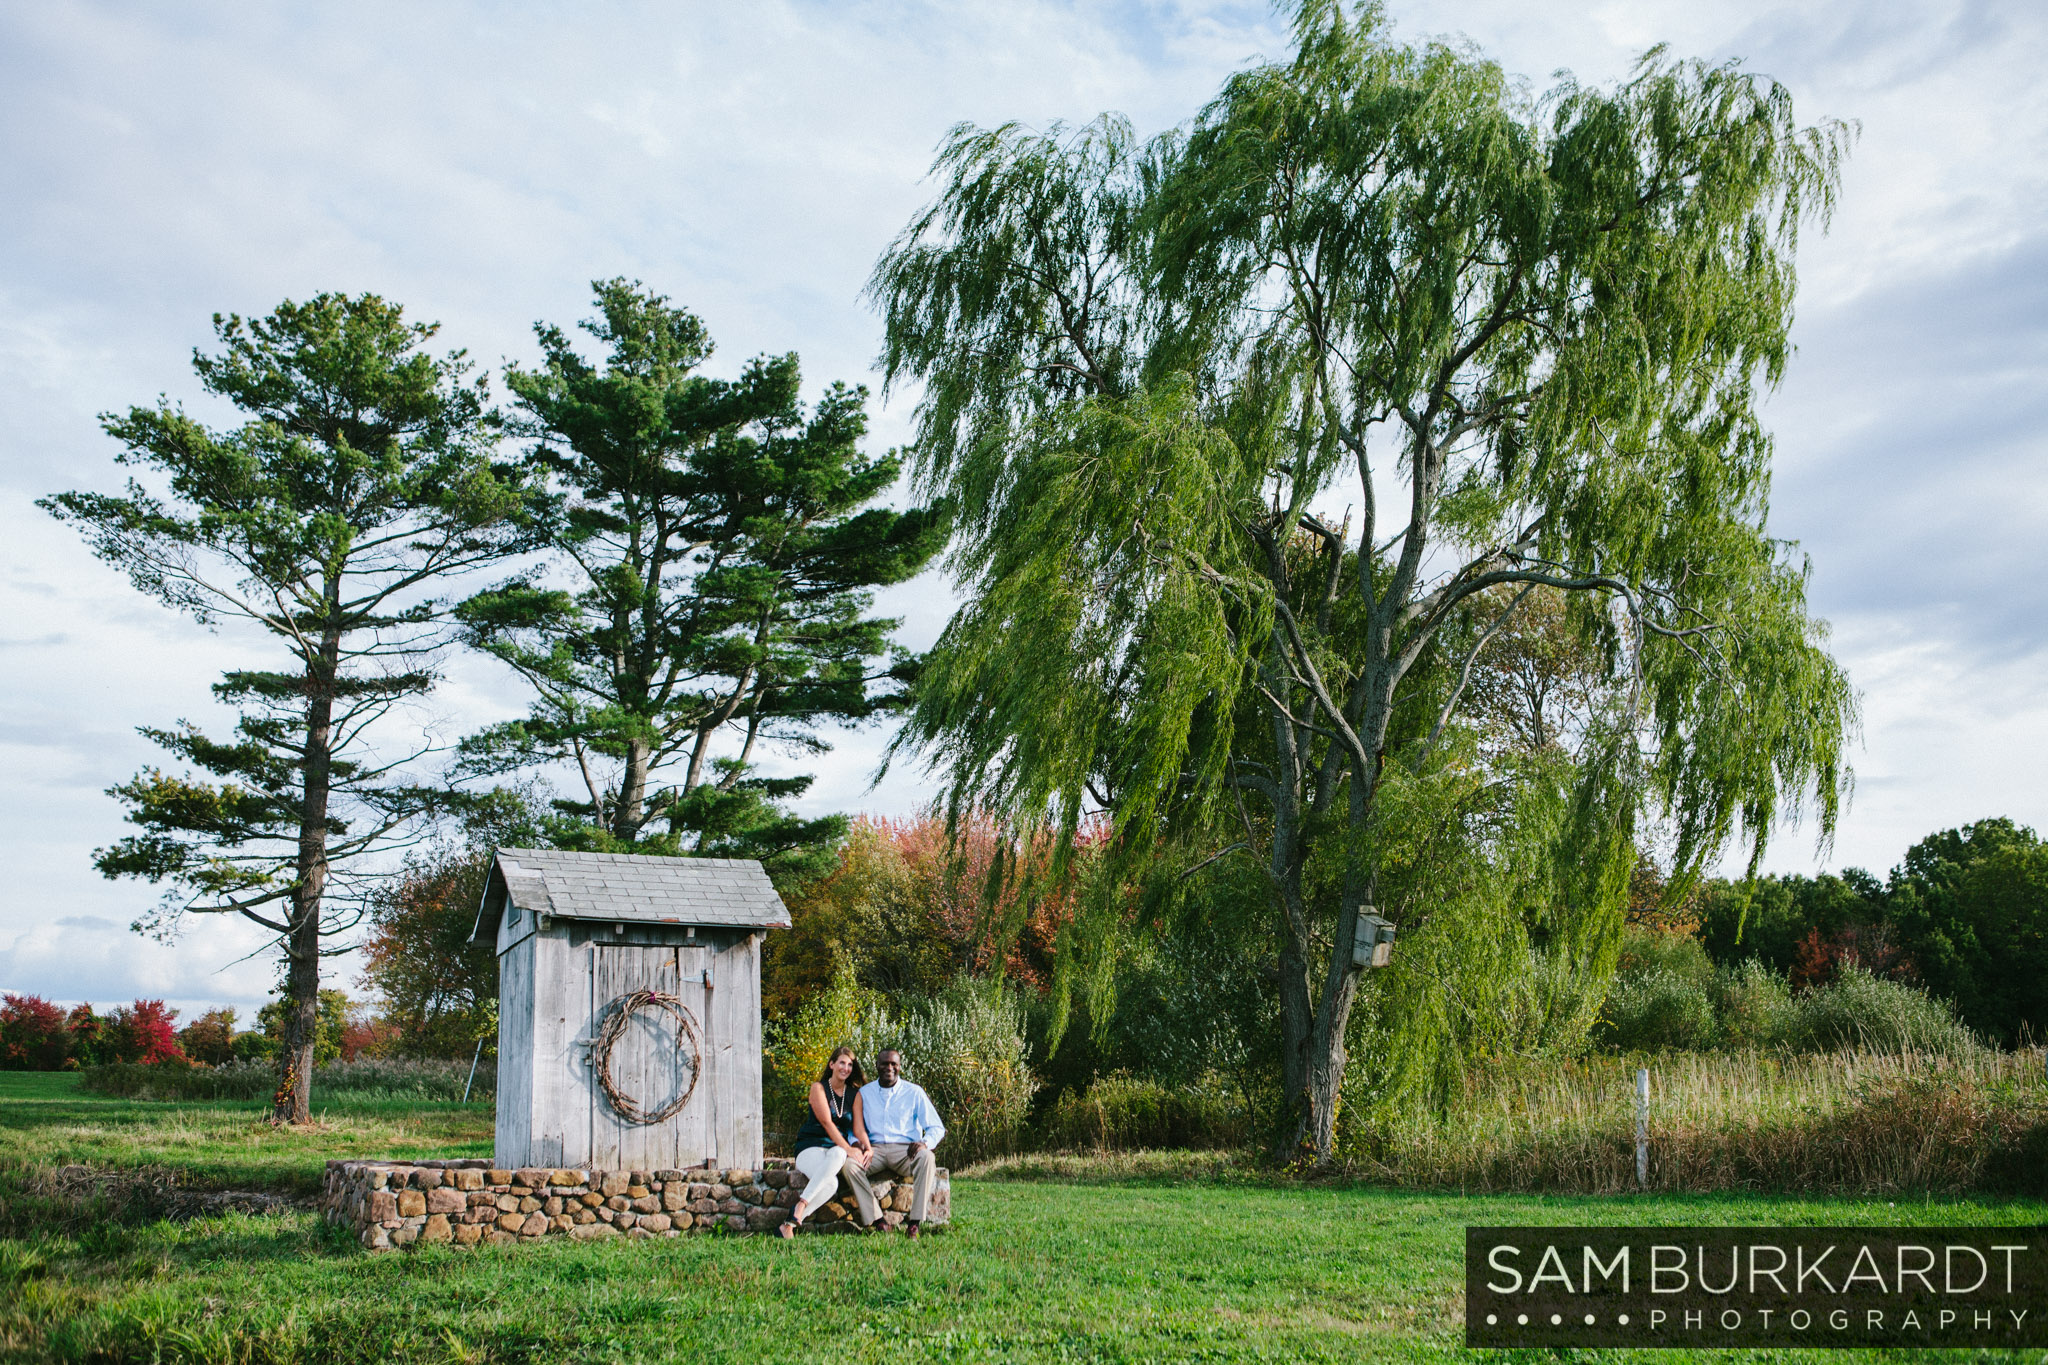 samburkardt-fall-engagement-connecticut-vineyard-nature-wine_0006.jpg